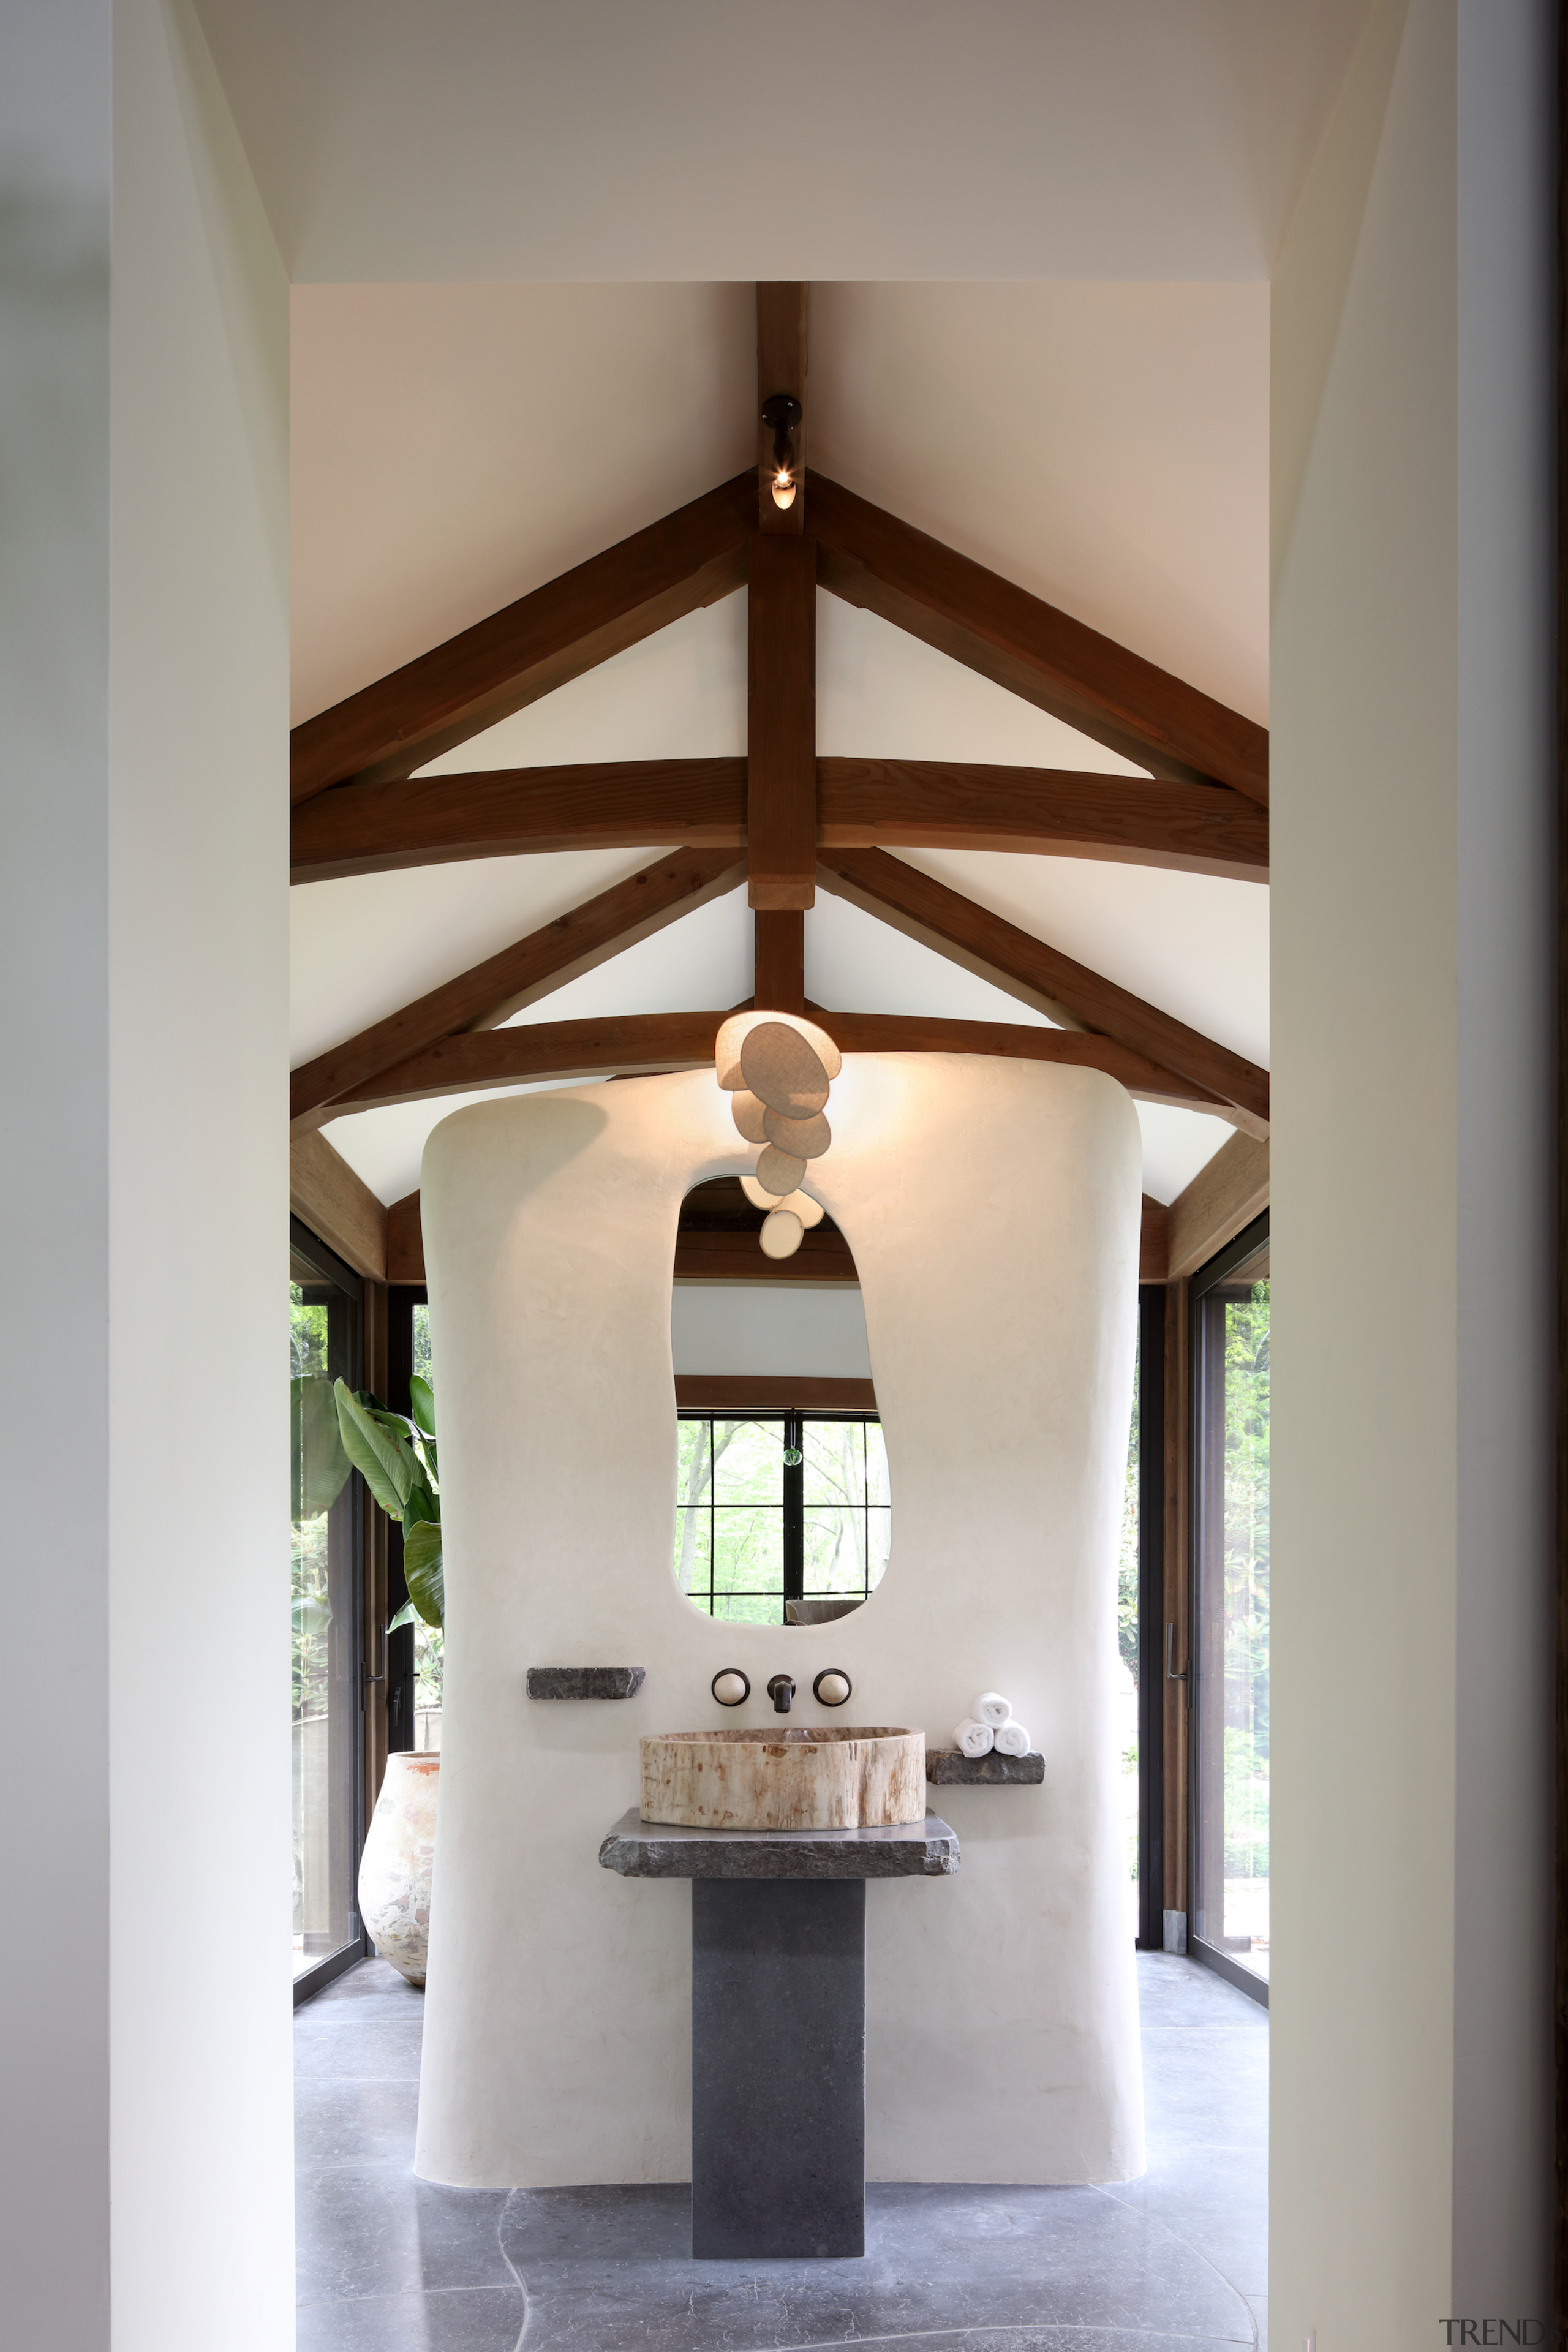 This dramatic bathroom reflects the home's merger of